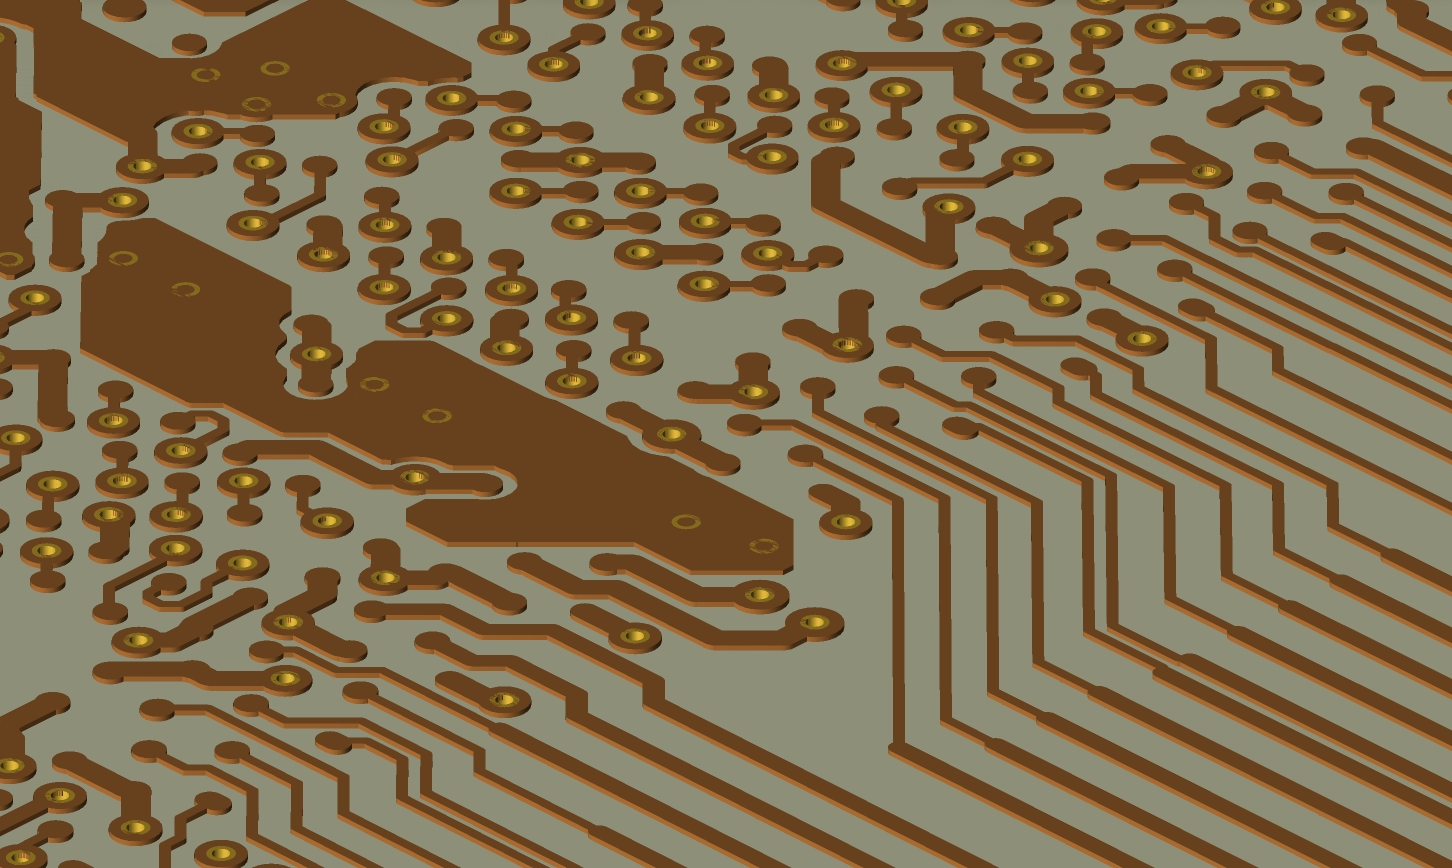 Conductors and vias in a PCB layout